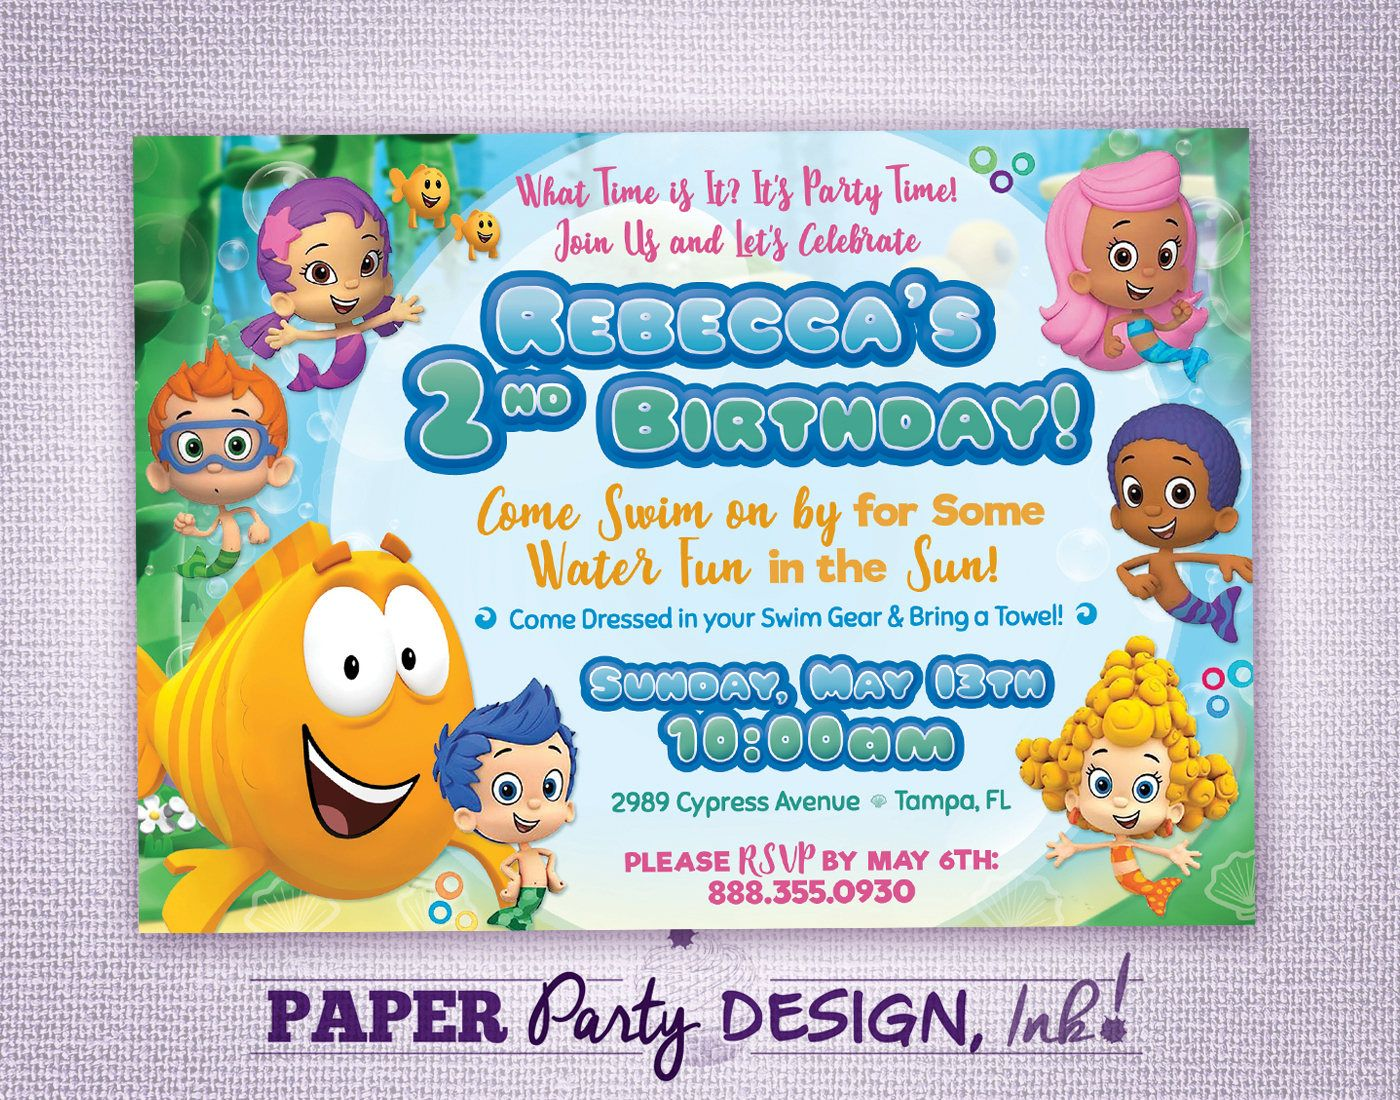 Bubble Guppies Birthday Party Invitation, Bubble Guppies Party ...